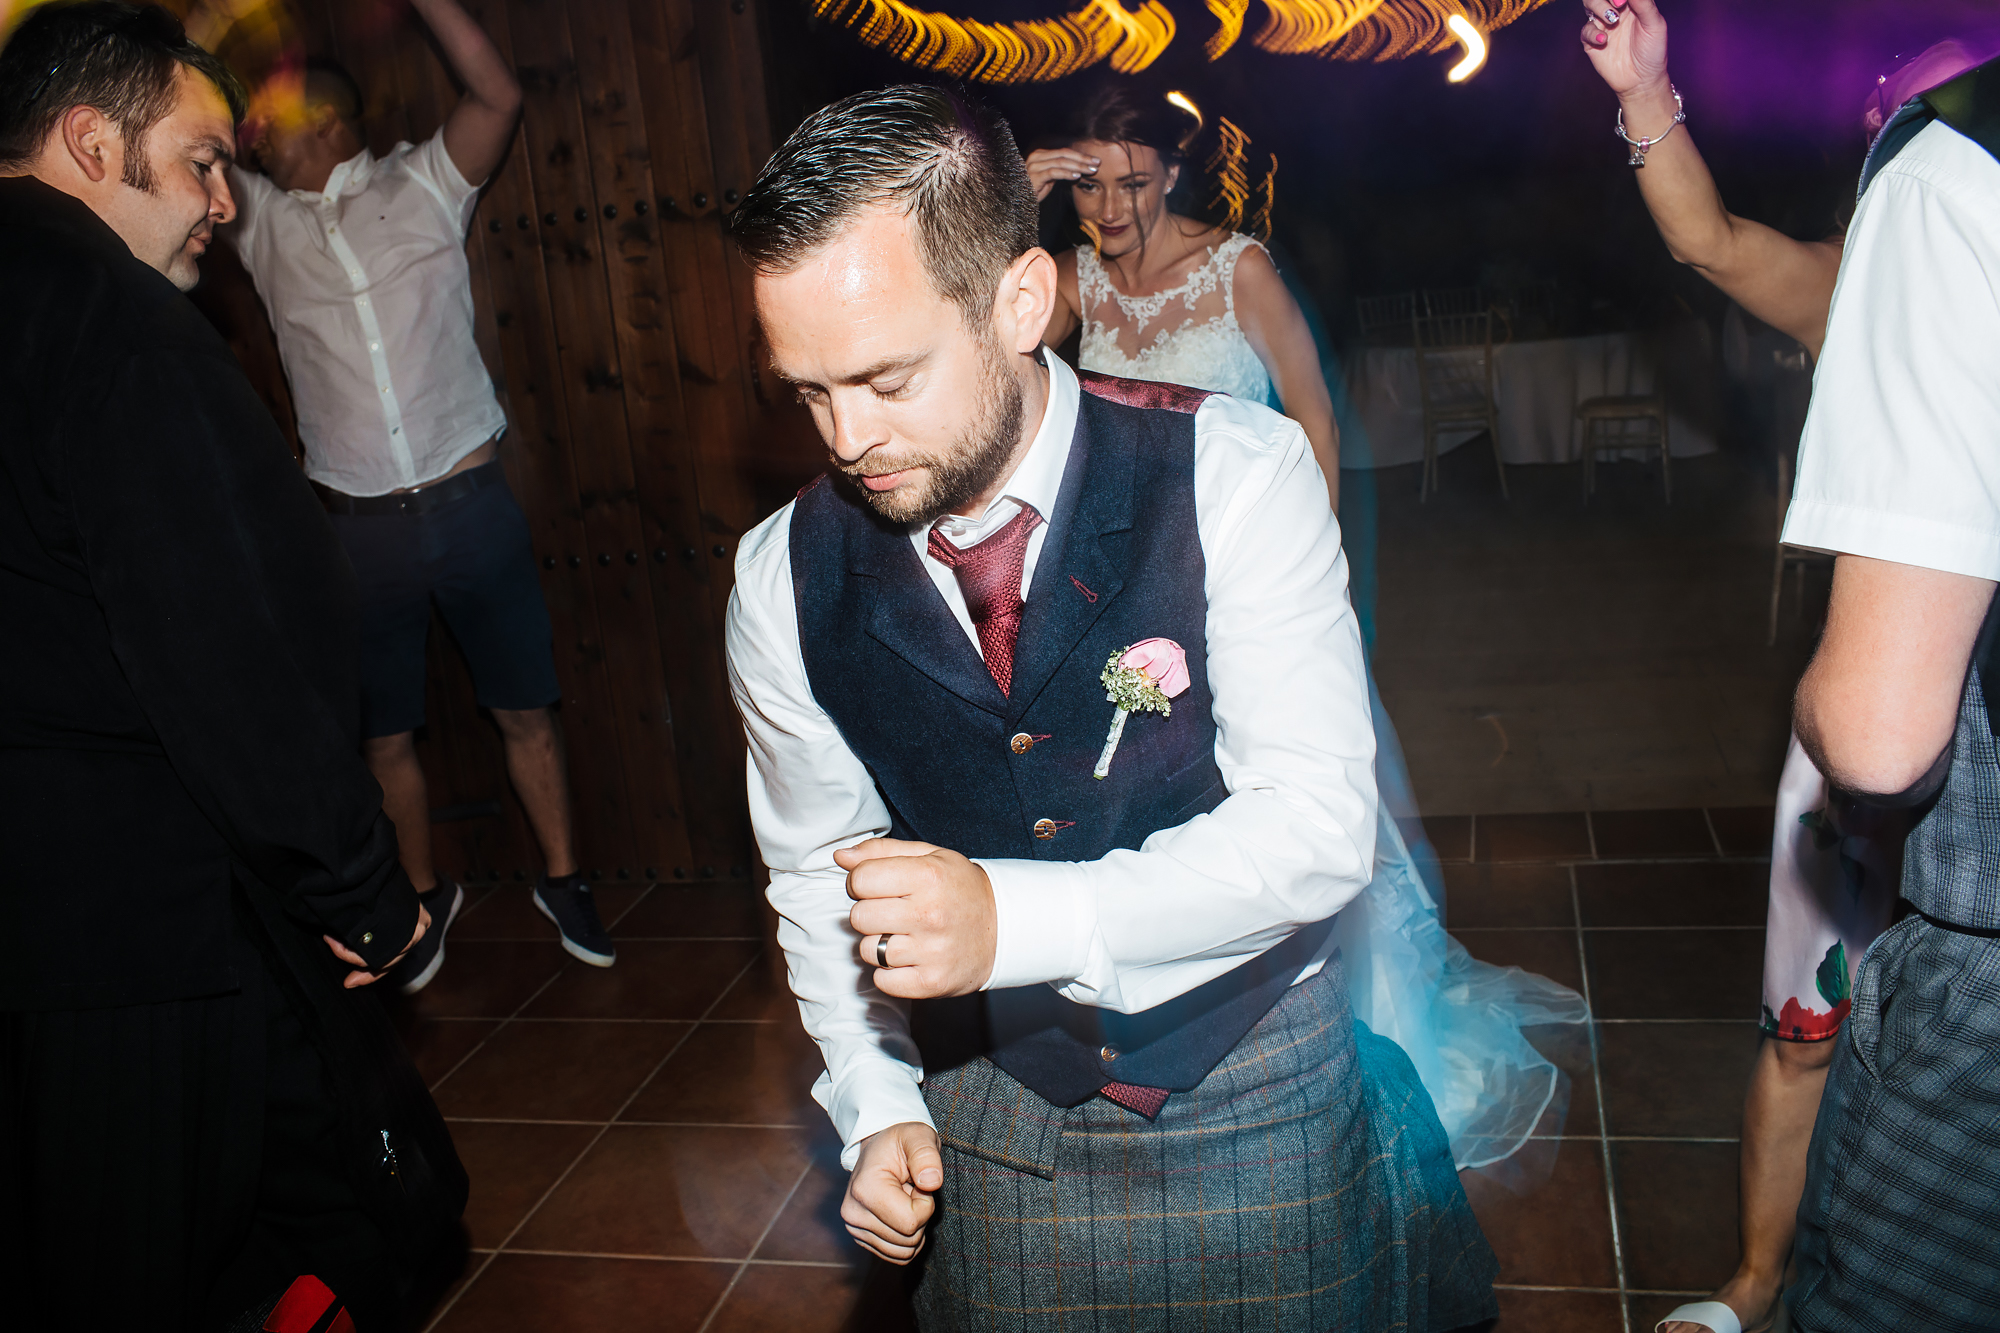 Groom dancing at a wedding in Nerja Spain